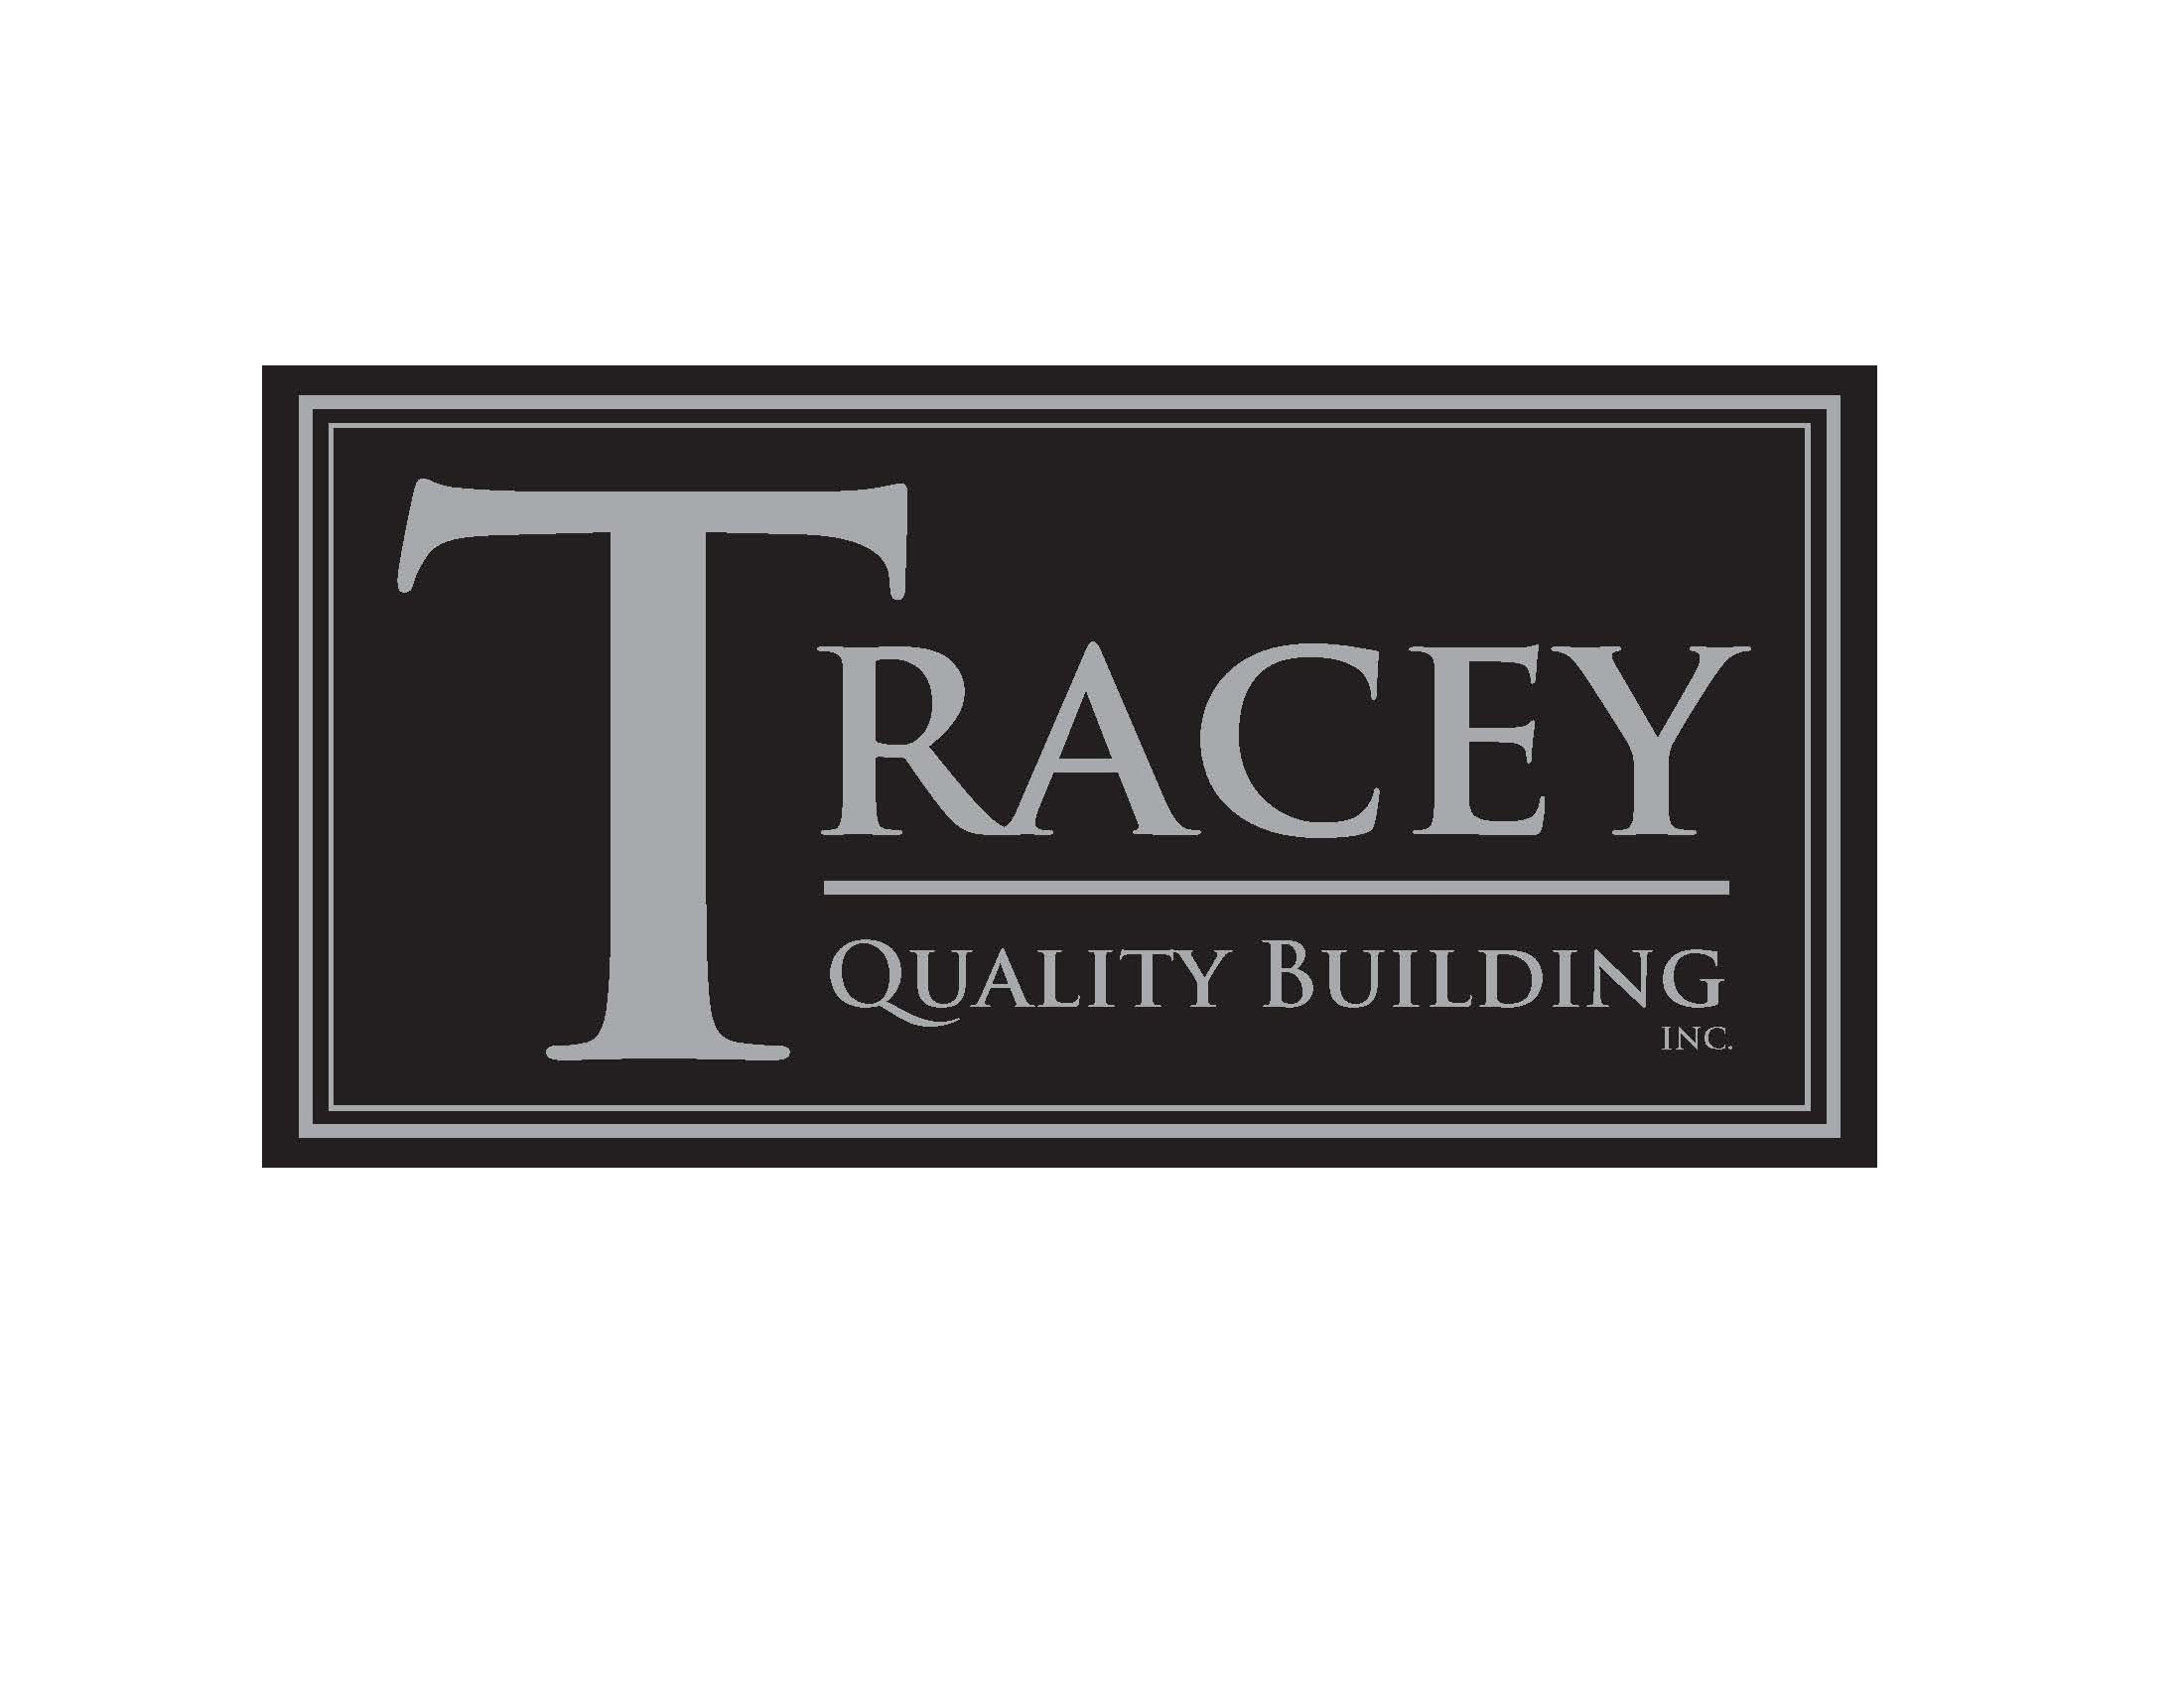 Tracey Quality Building logo